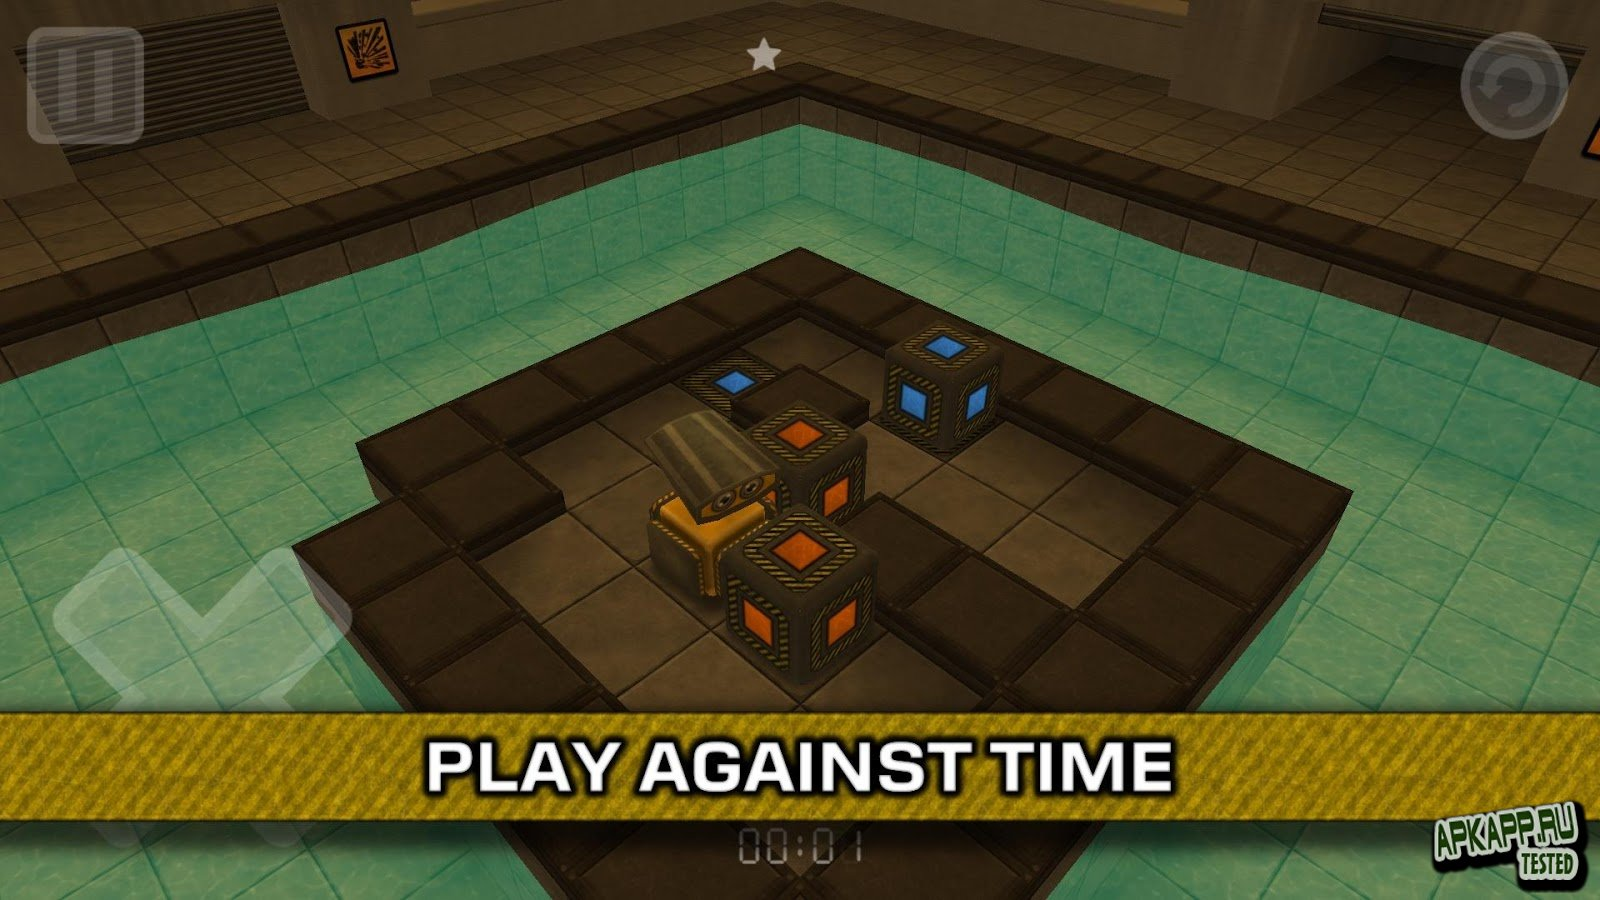 Sokoban Classic for Android - APK Download - apkpure.com